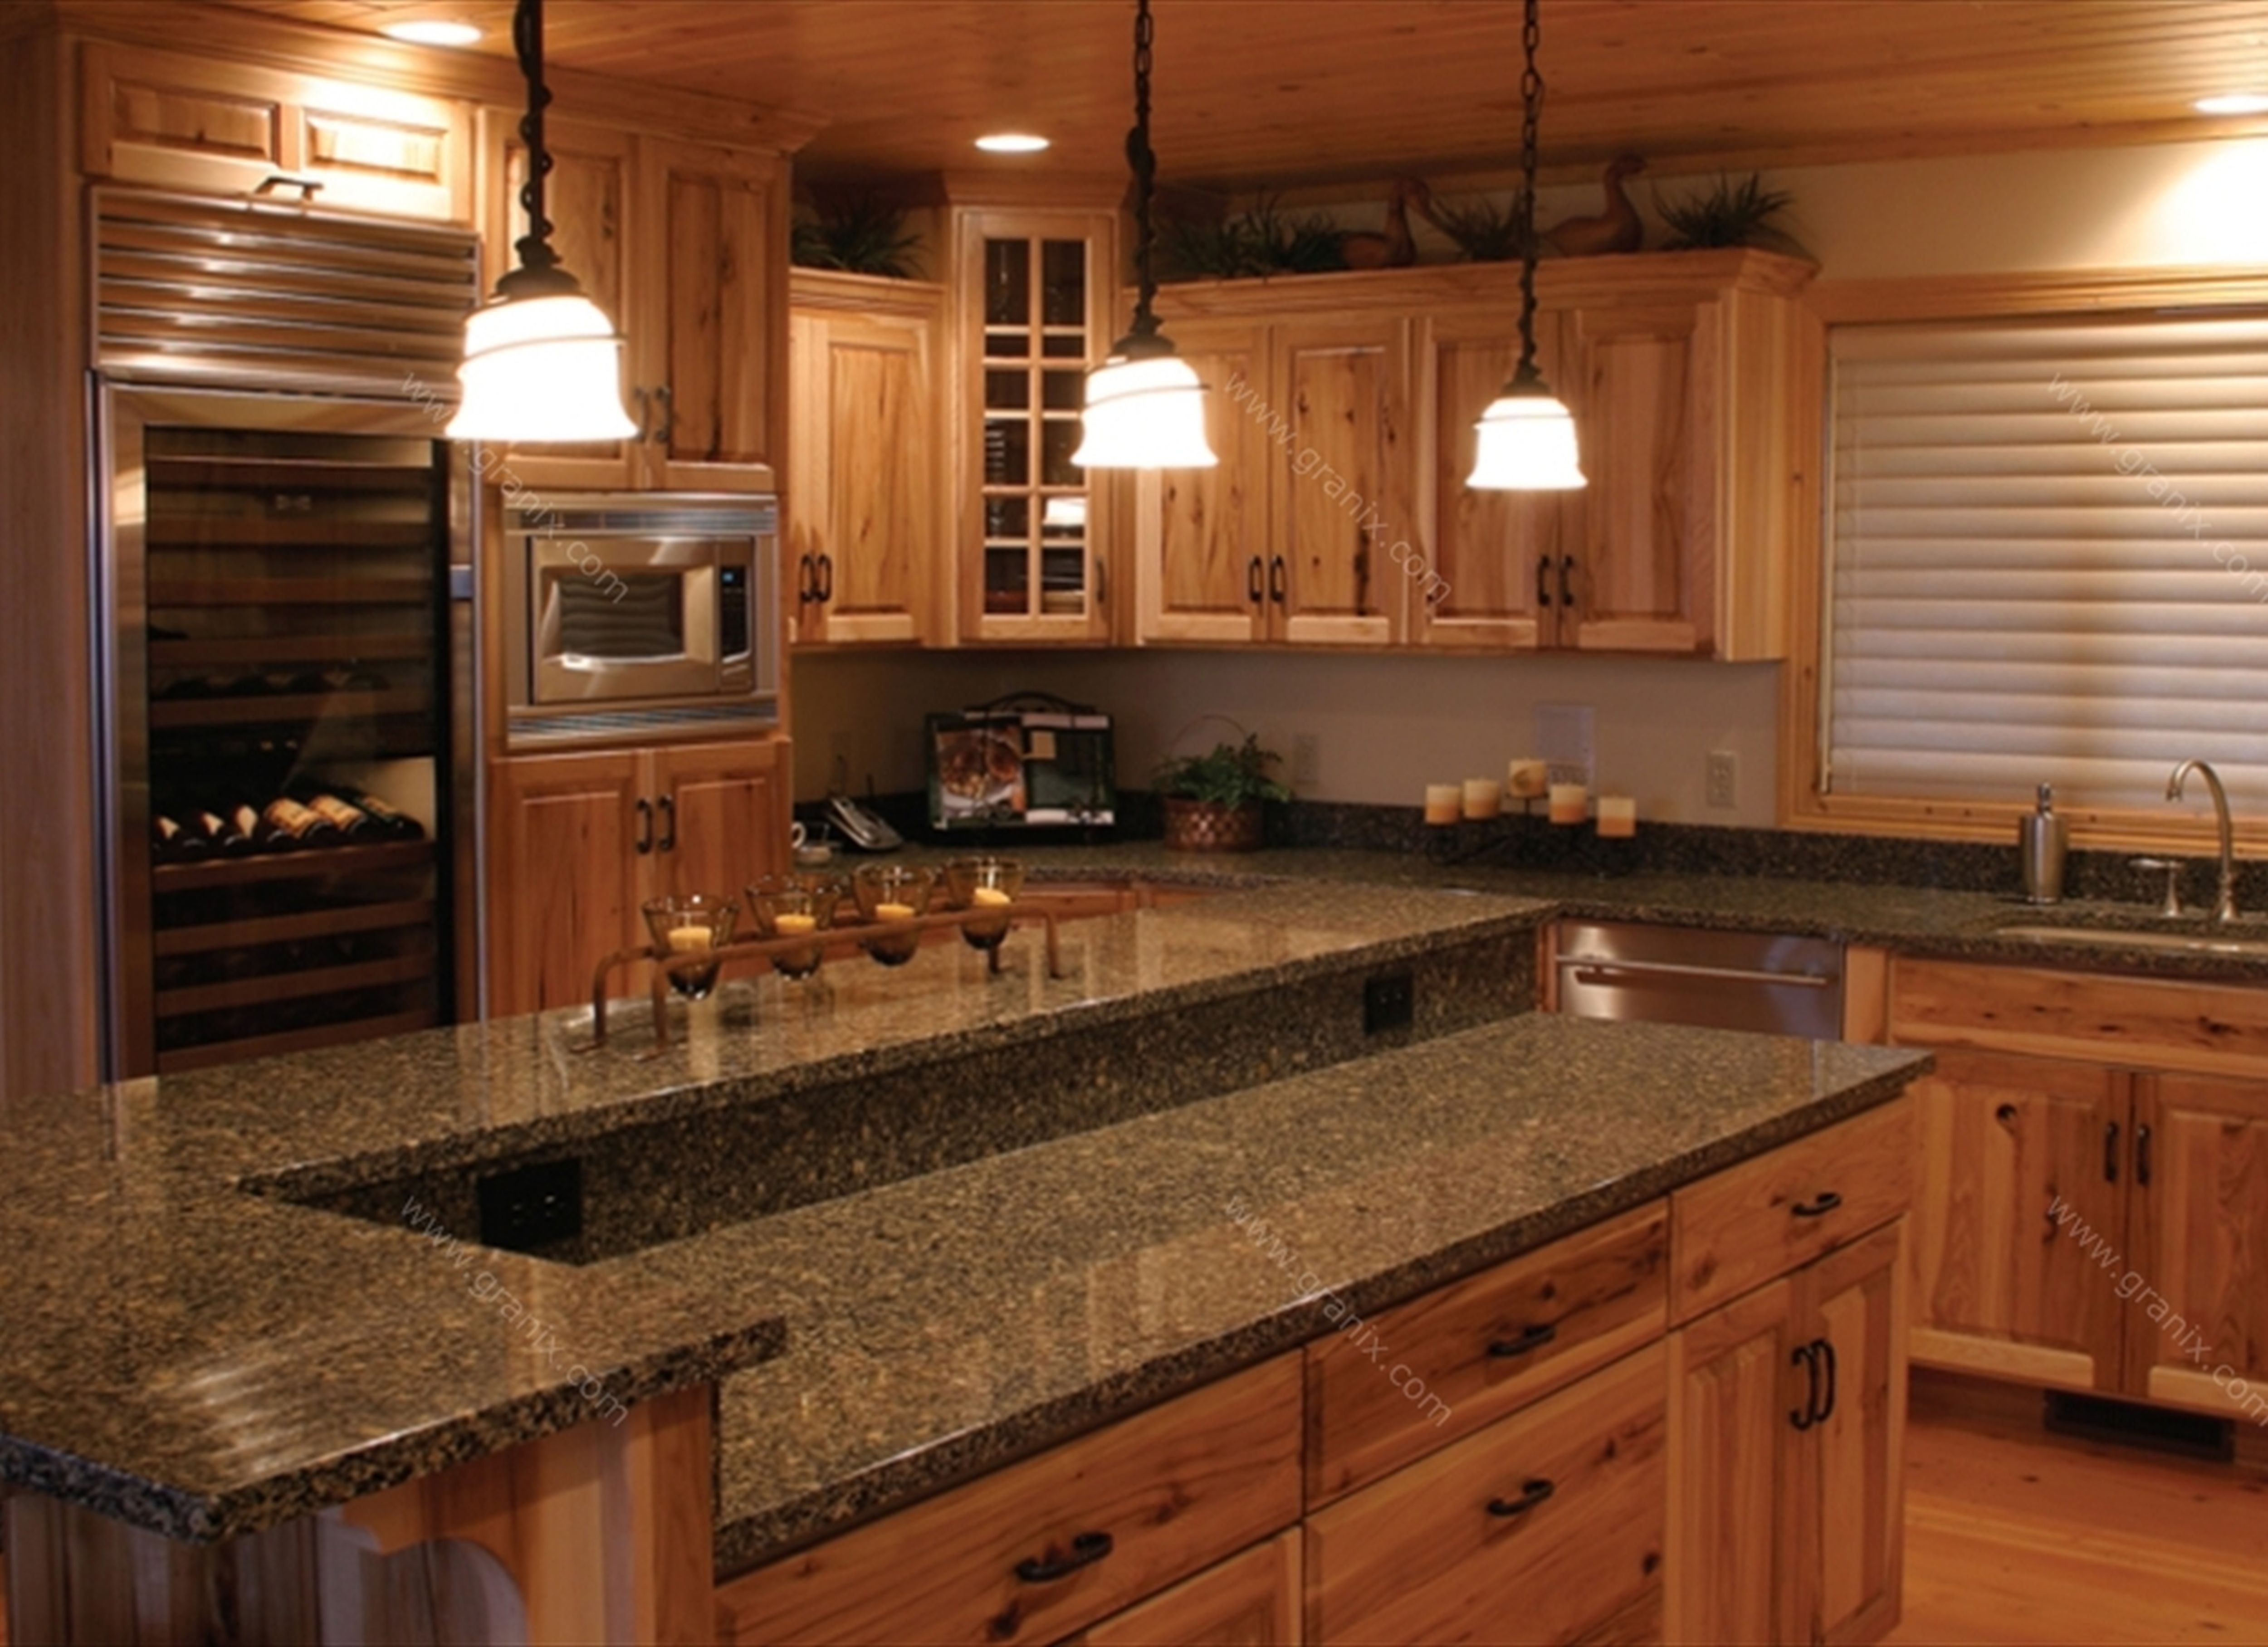 kitchen countertops Cozy Lowes Quartz Countertops for Your Kitchen Design Ideas Traditional Kitchen Design With Lowes Quartz